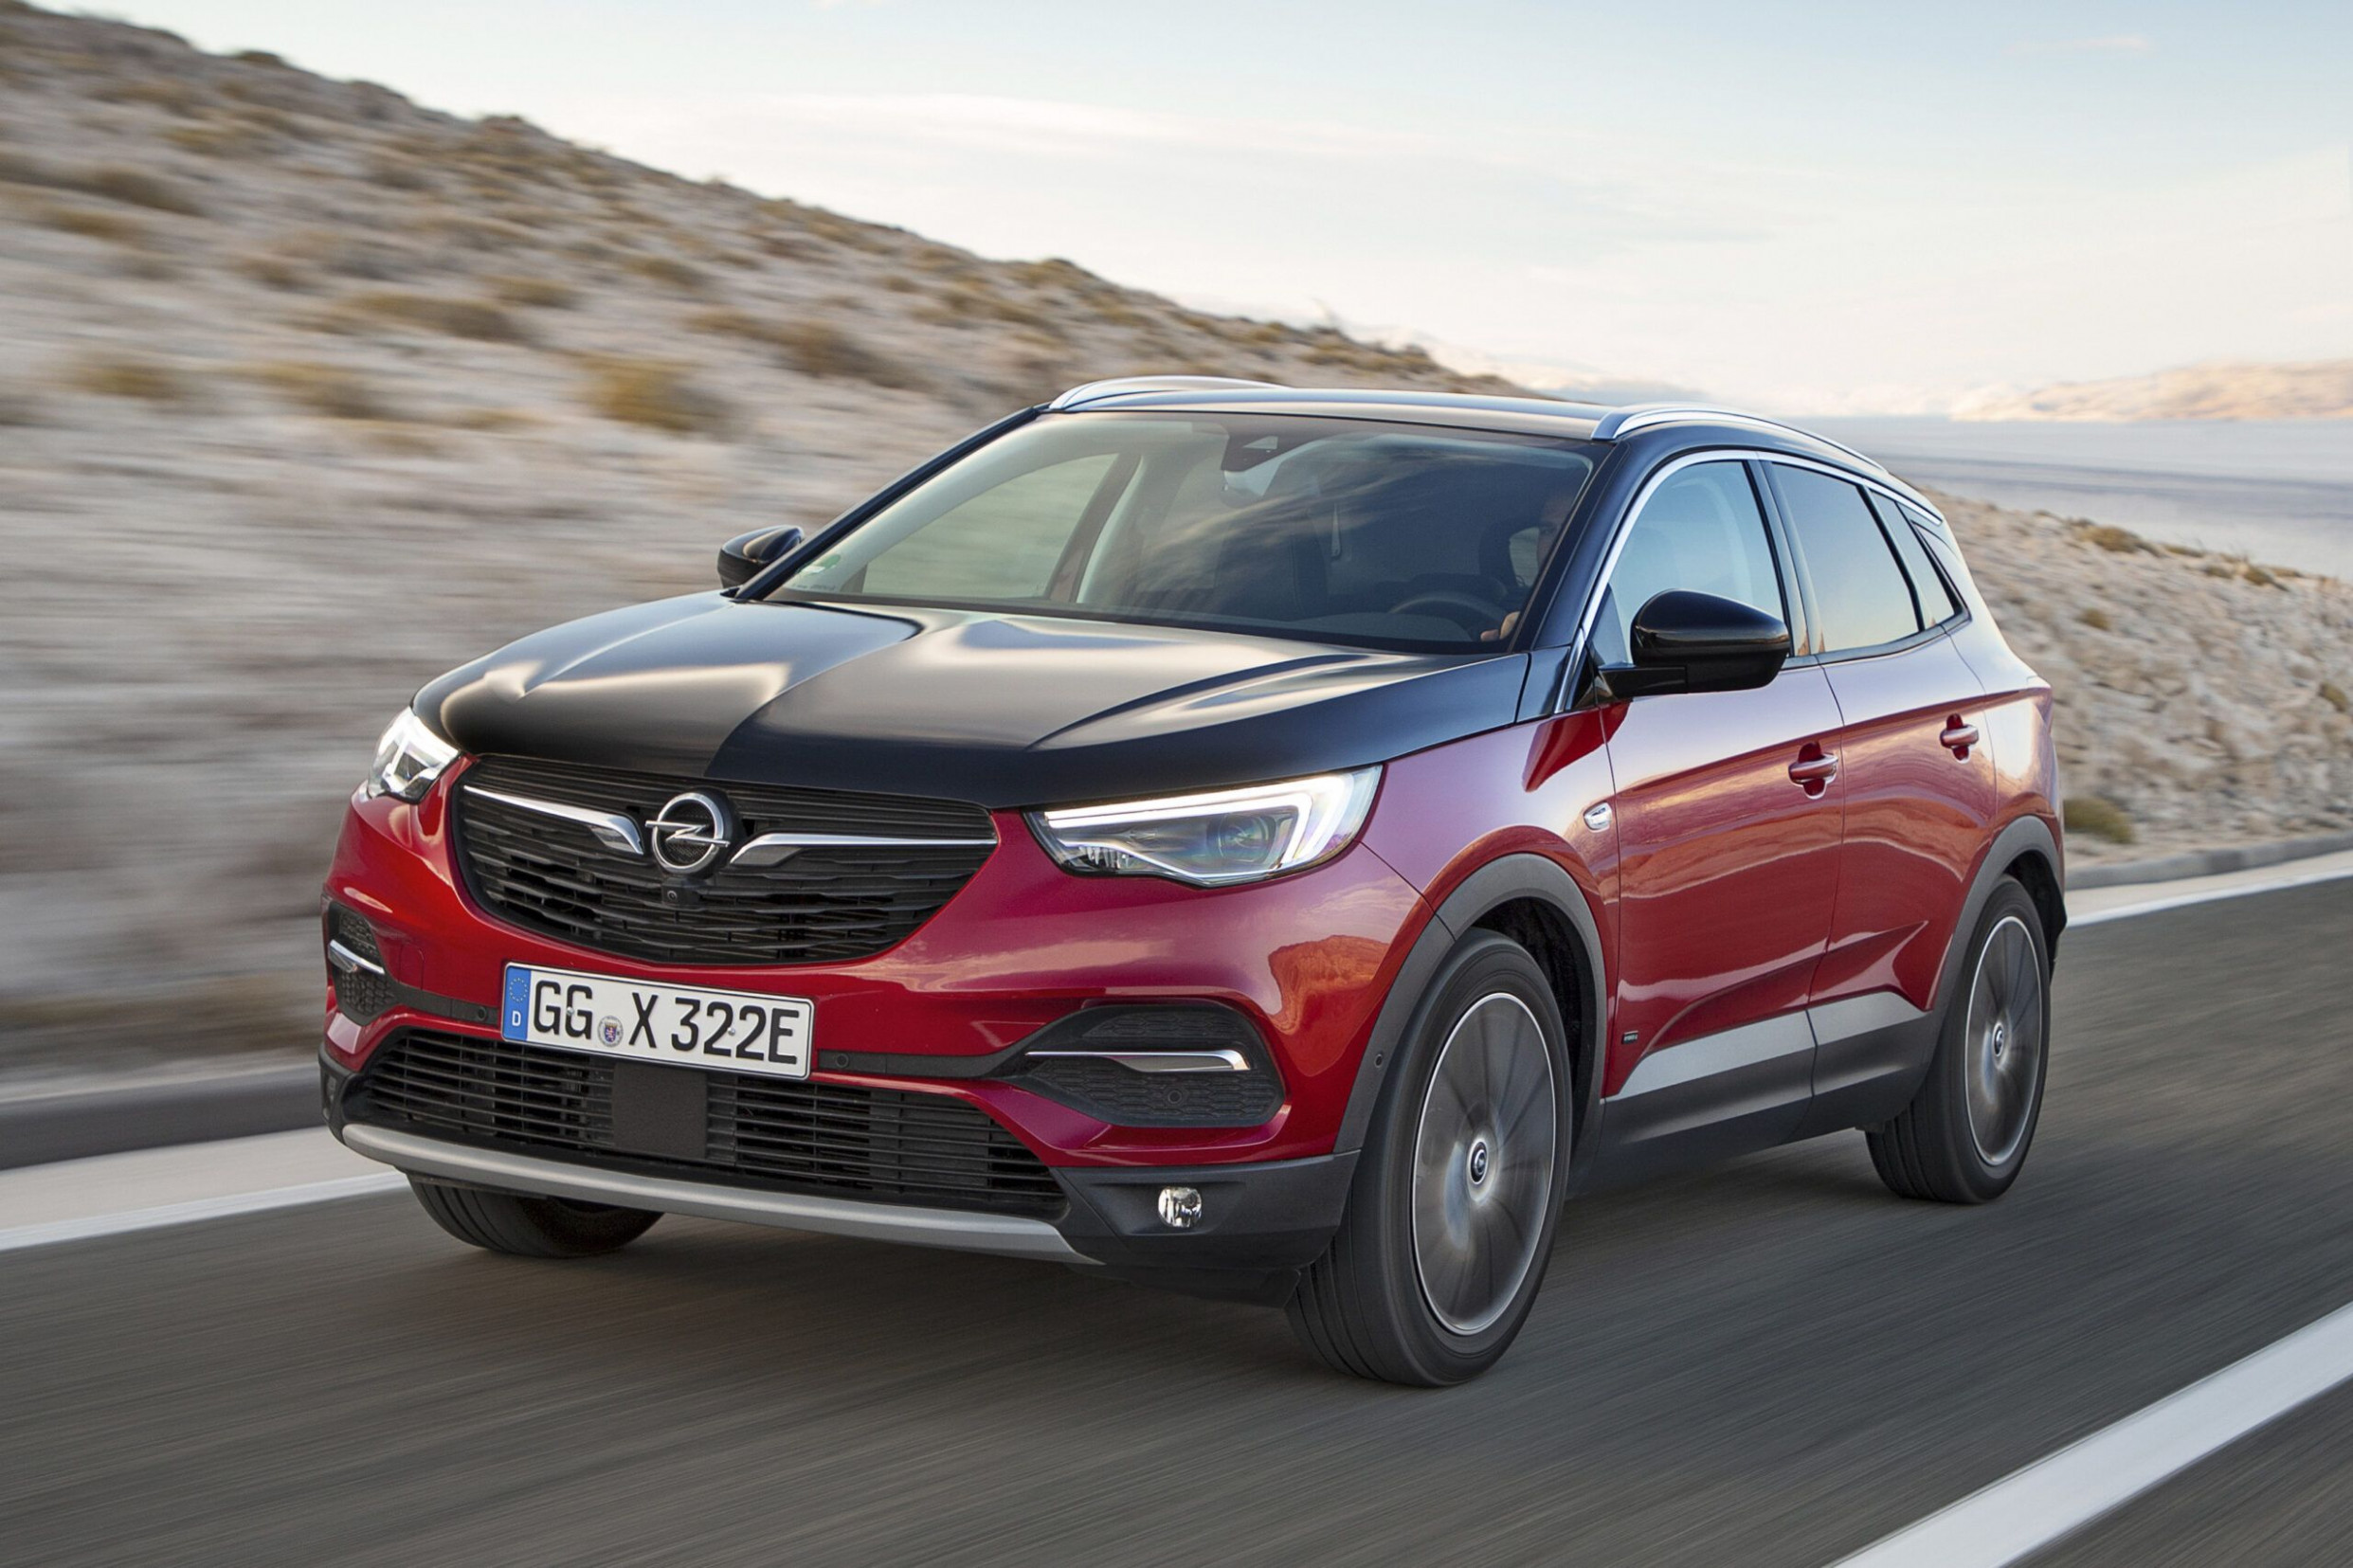 Opel Jeep 8 Pret First Drive | Car, Jeep, First drive - opel jeep 2020 pret